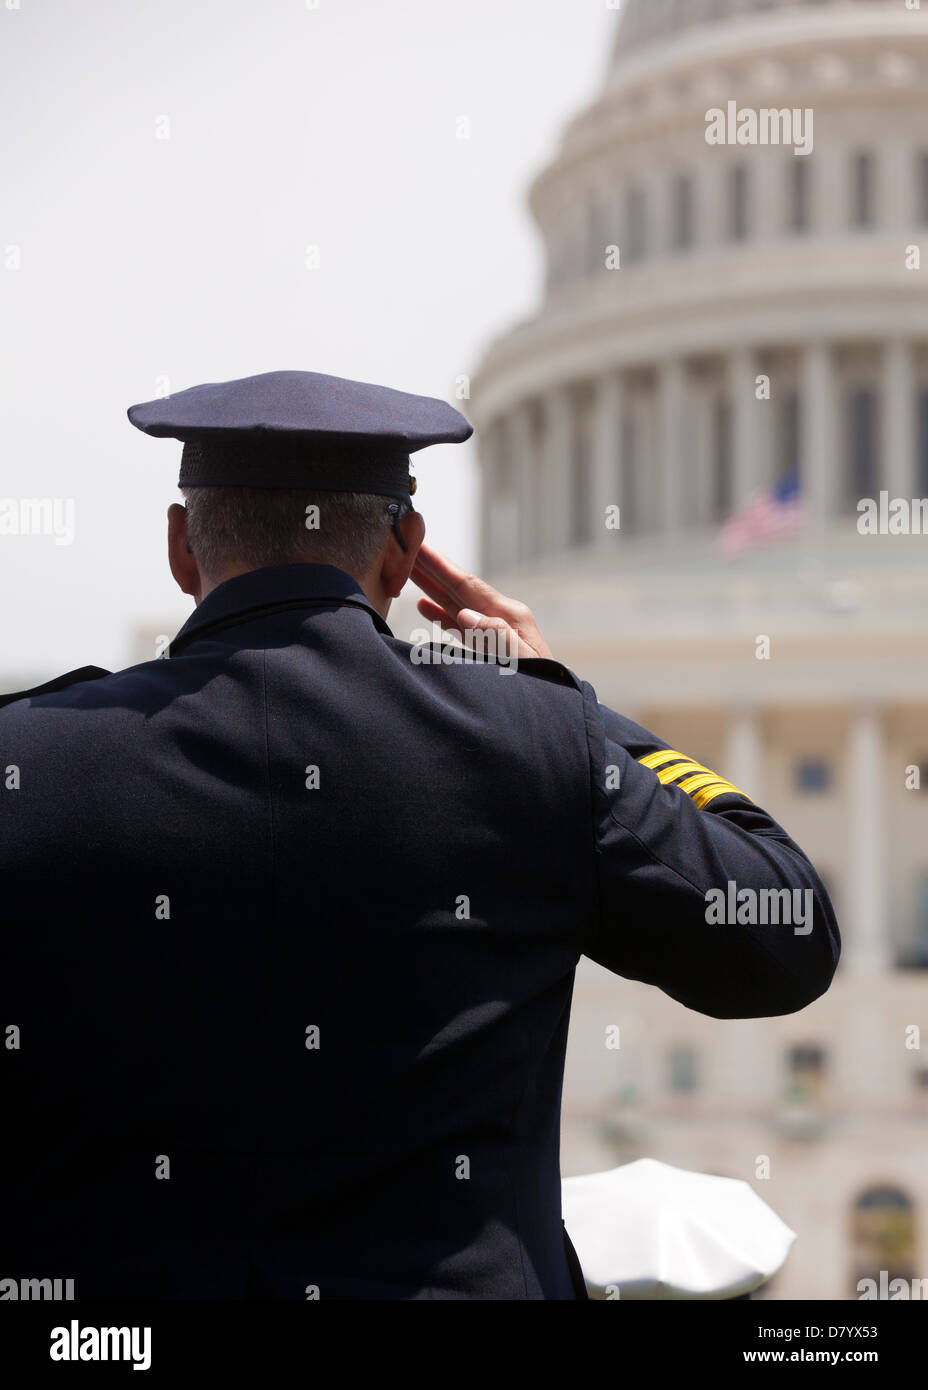 Policeman saluting in front of the US Capitol building - Washington, DC USA - Stock Image